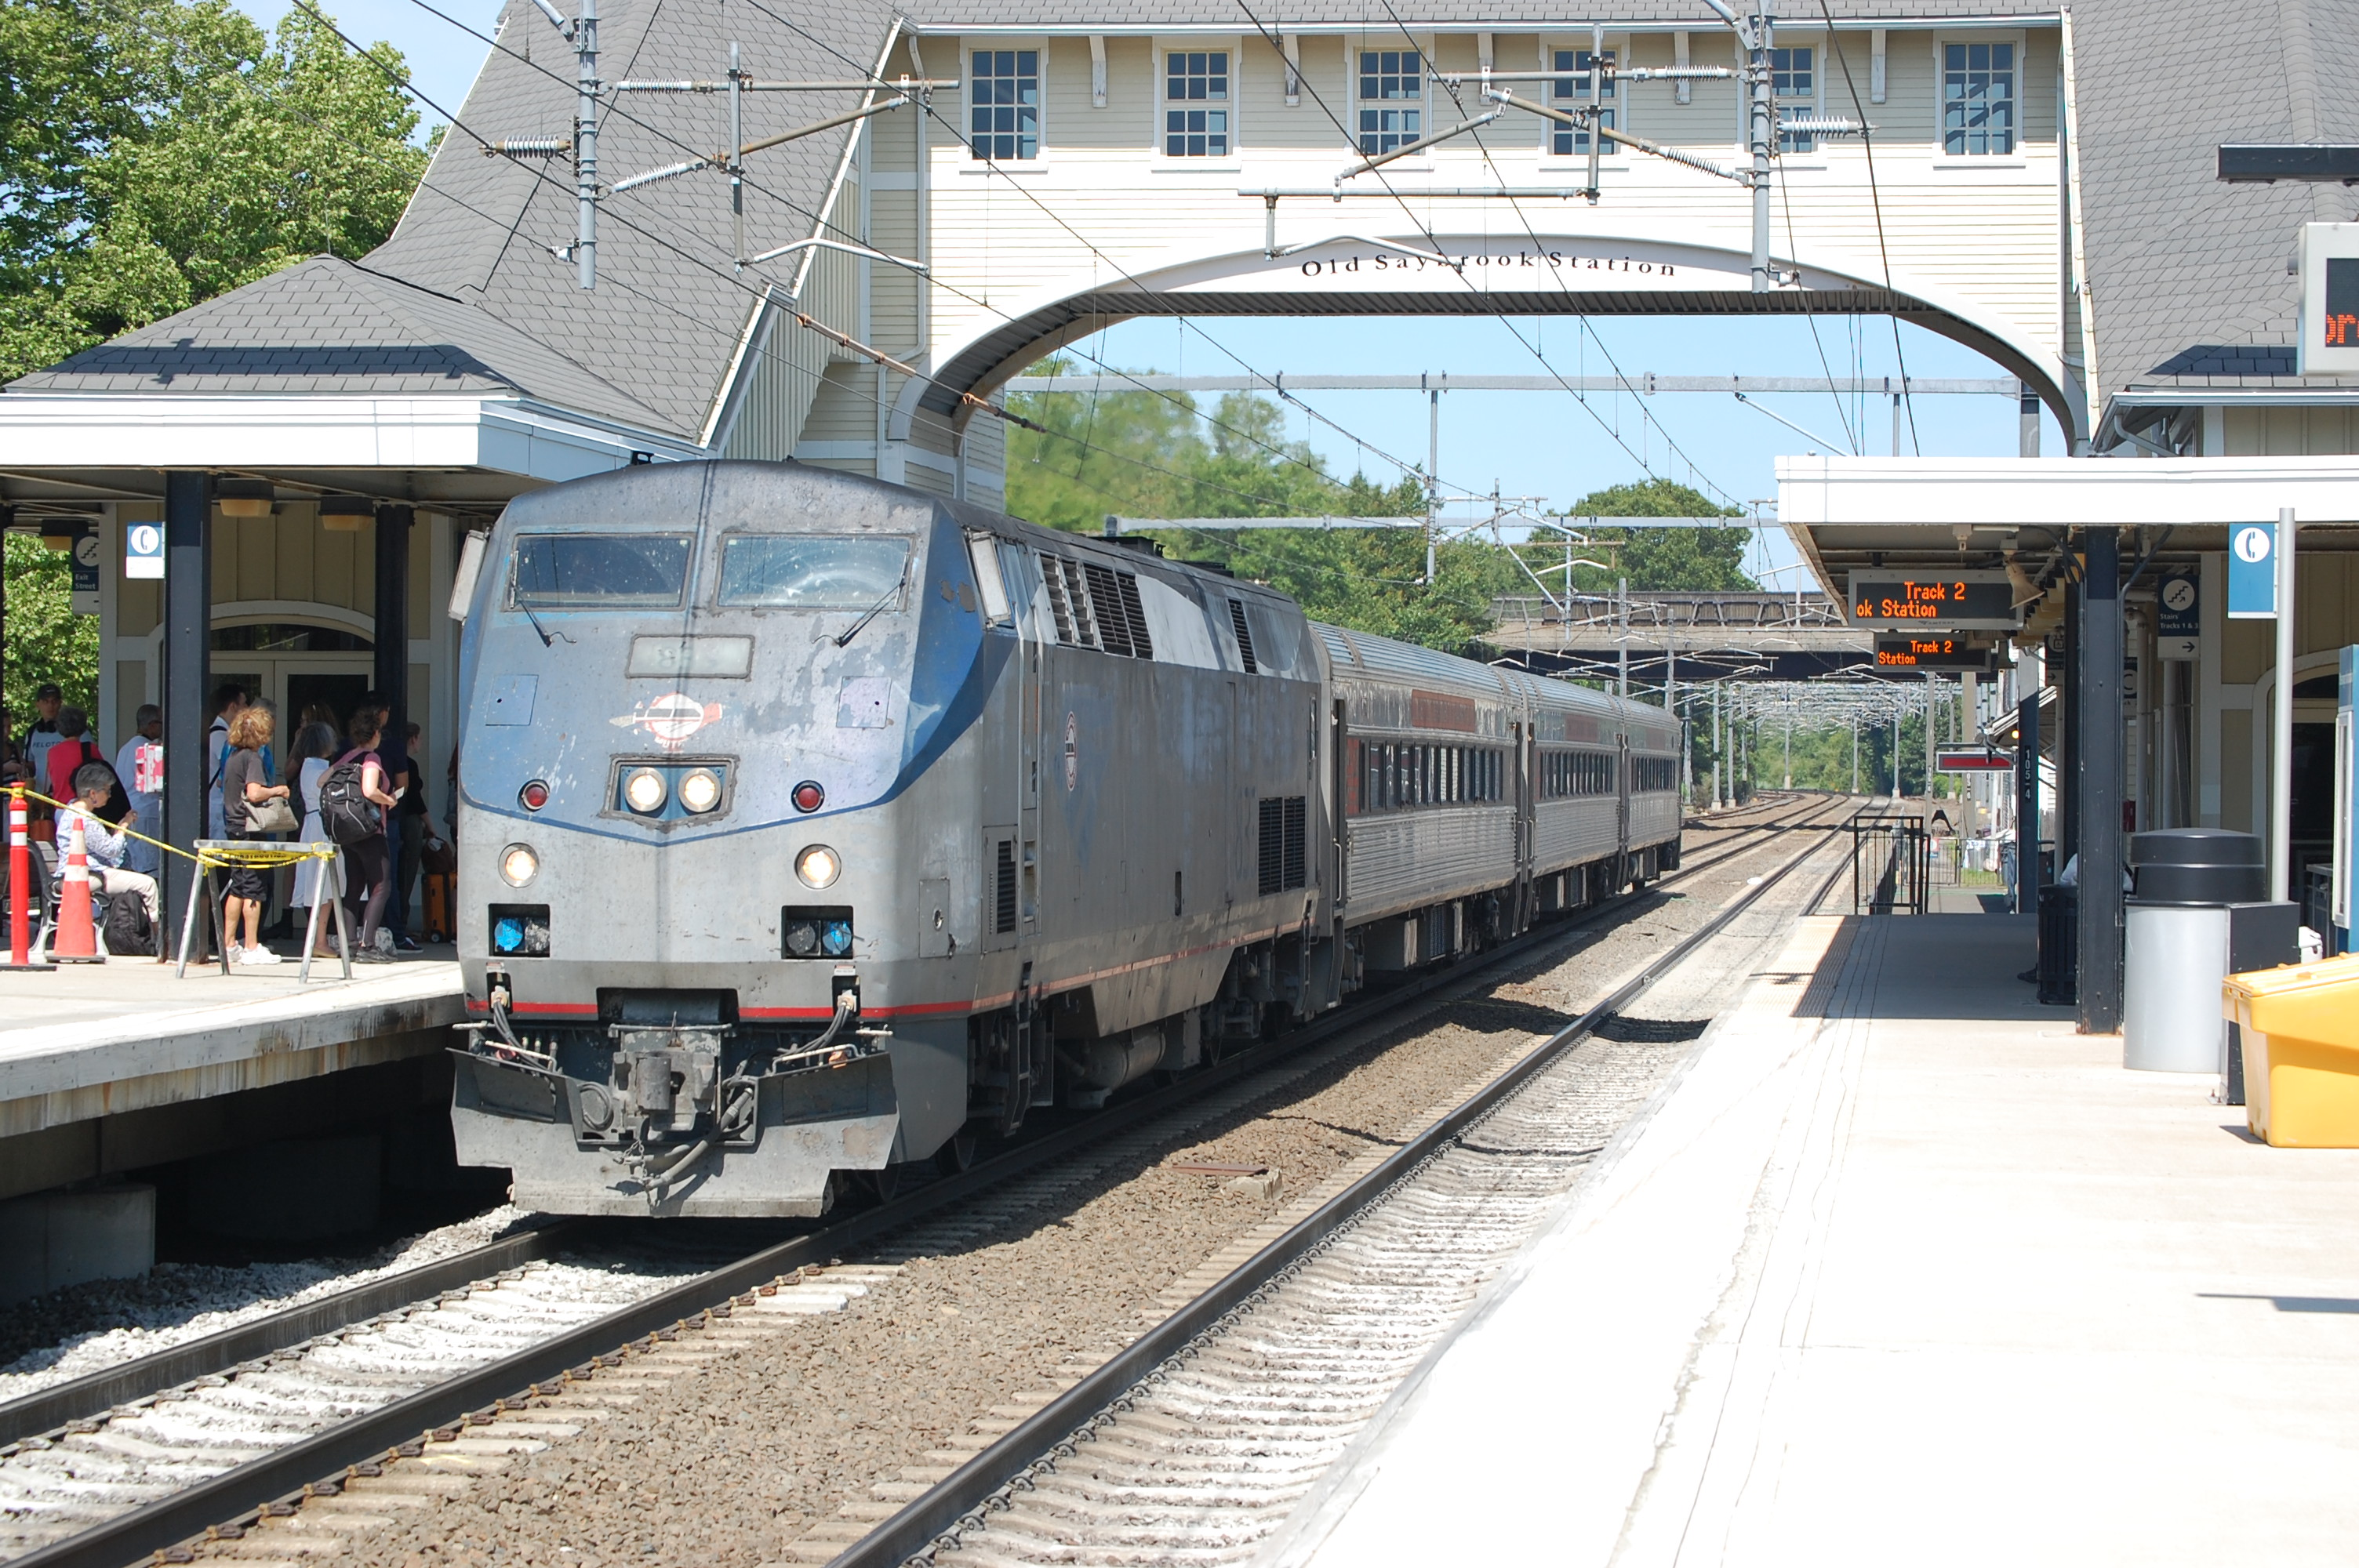 file shore line east p40dc arriving at old saybrook jpg wikimedia